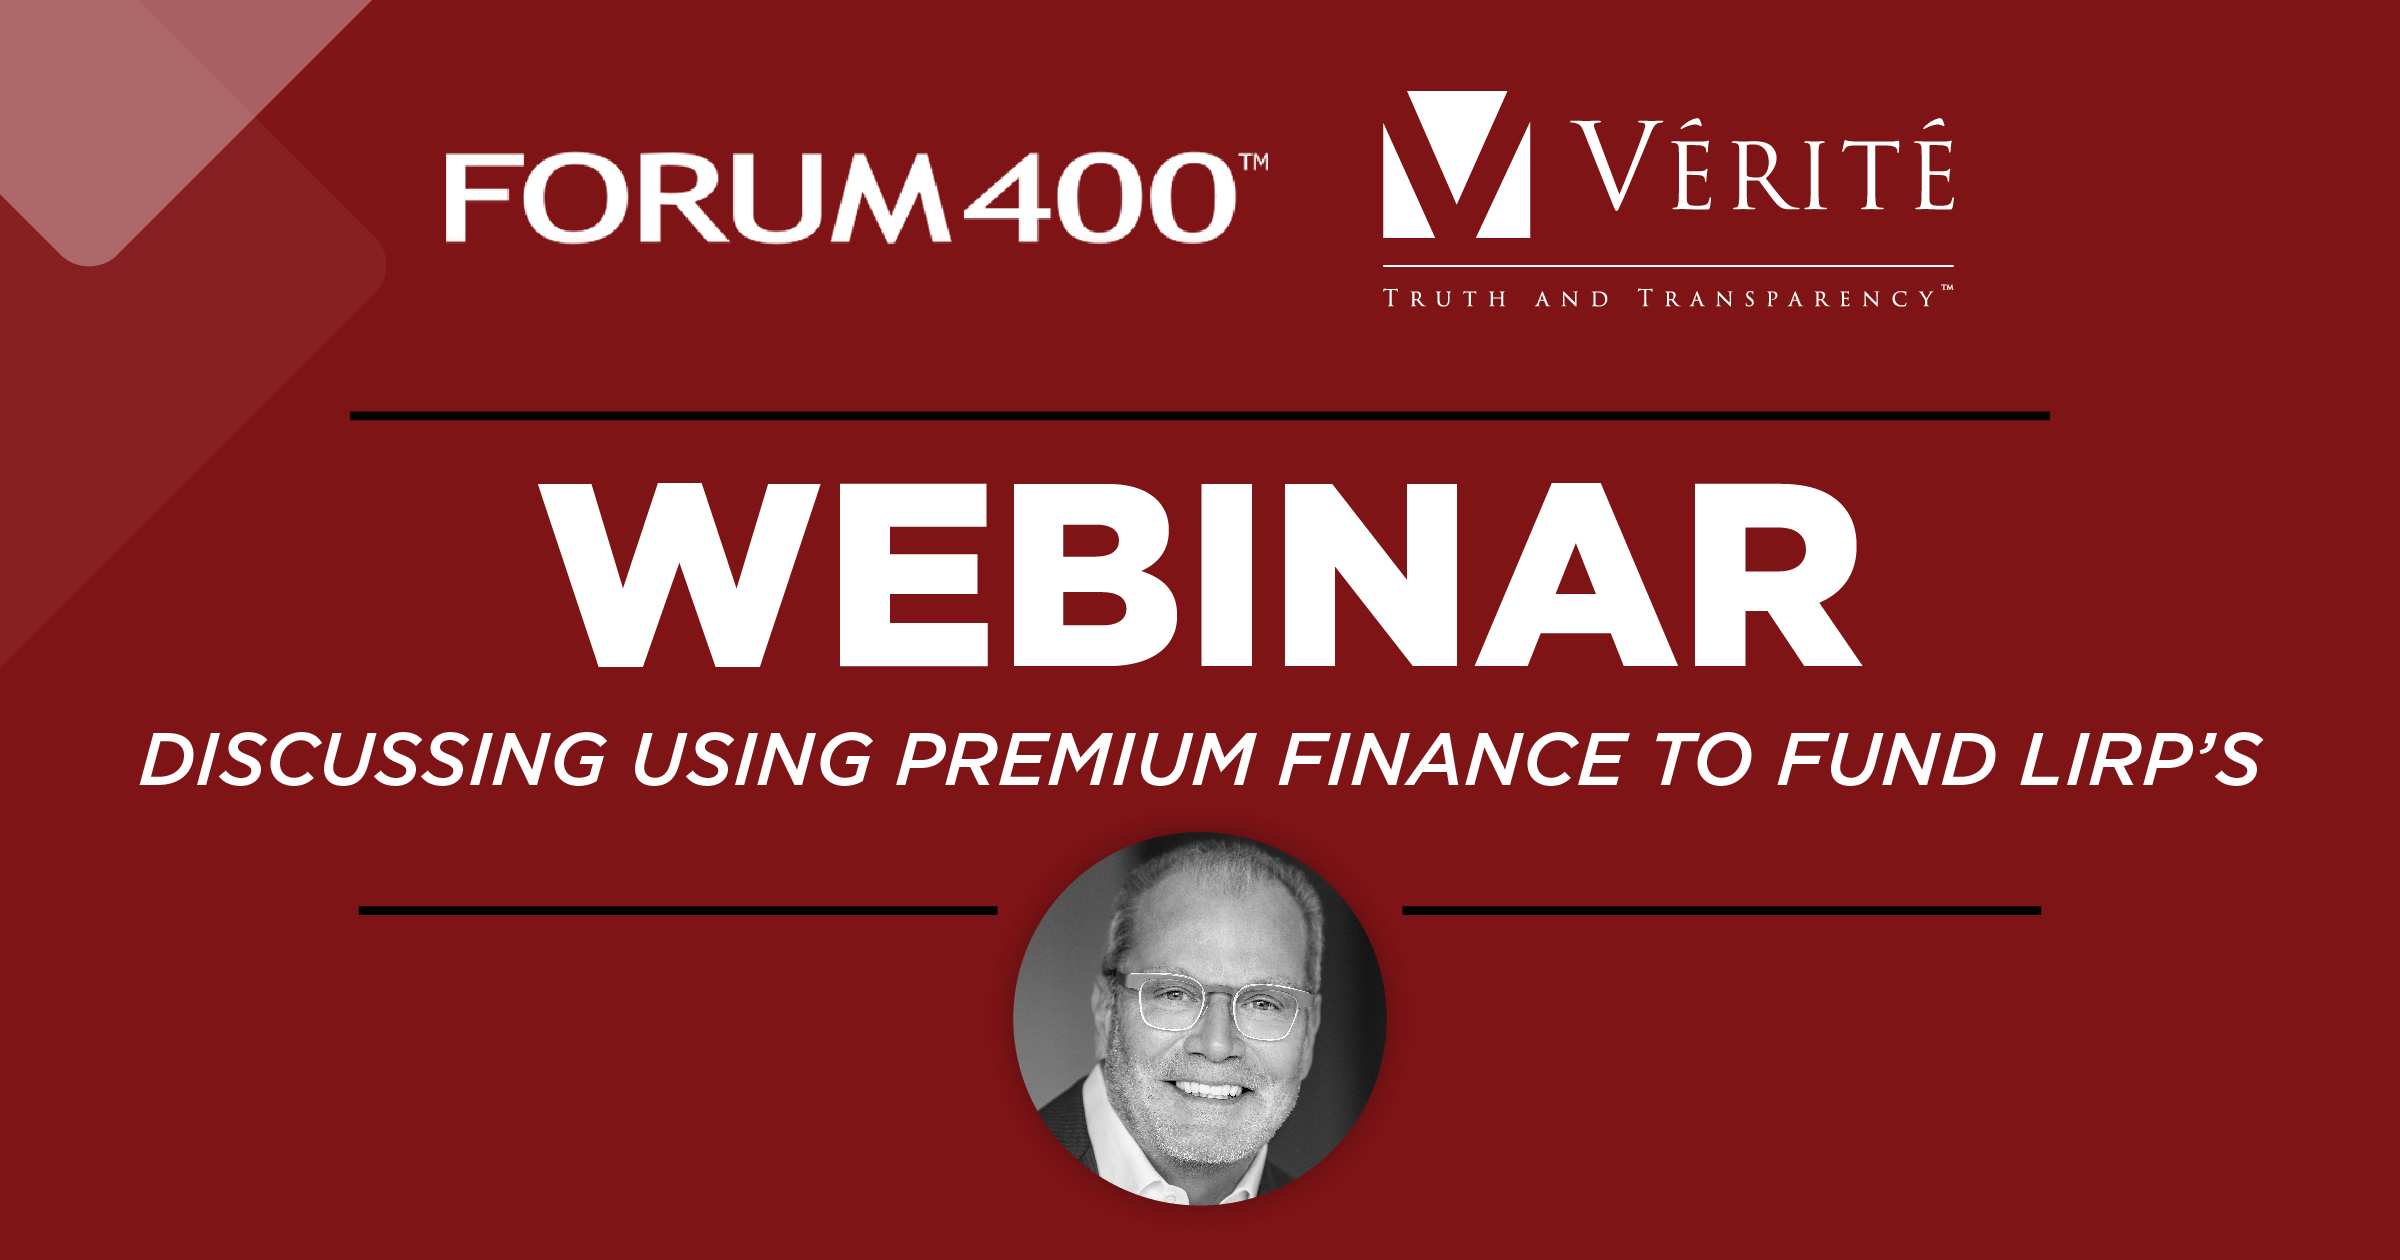 Forum 400 Webinar - Discussing Using Premium Finance To Fund Lirp's (GATED)